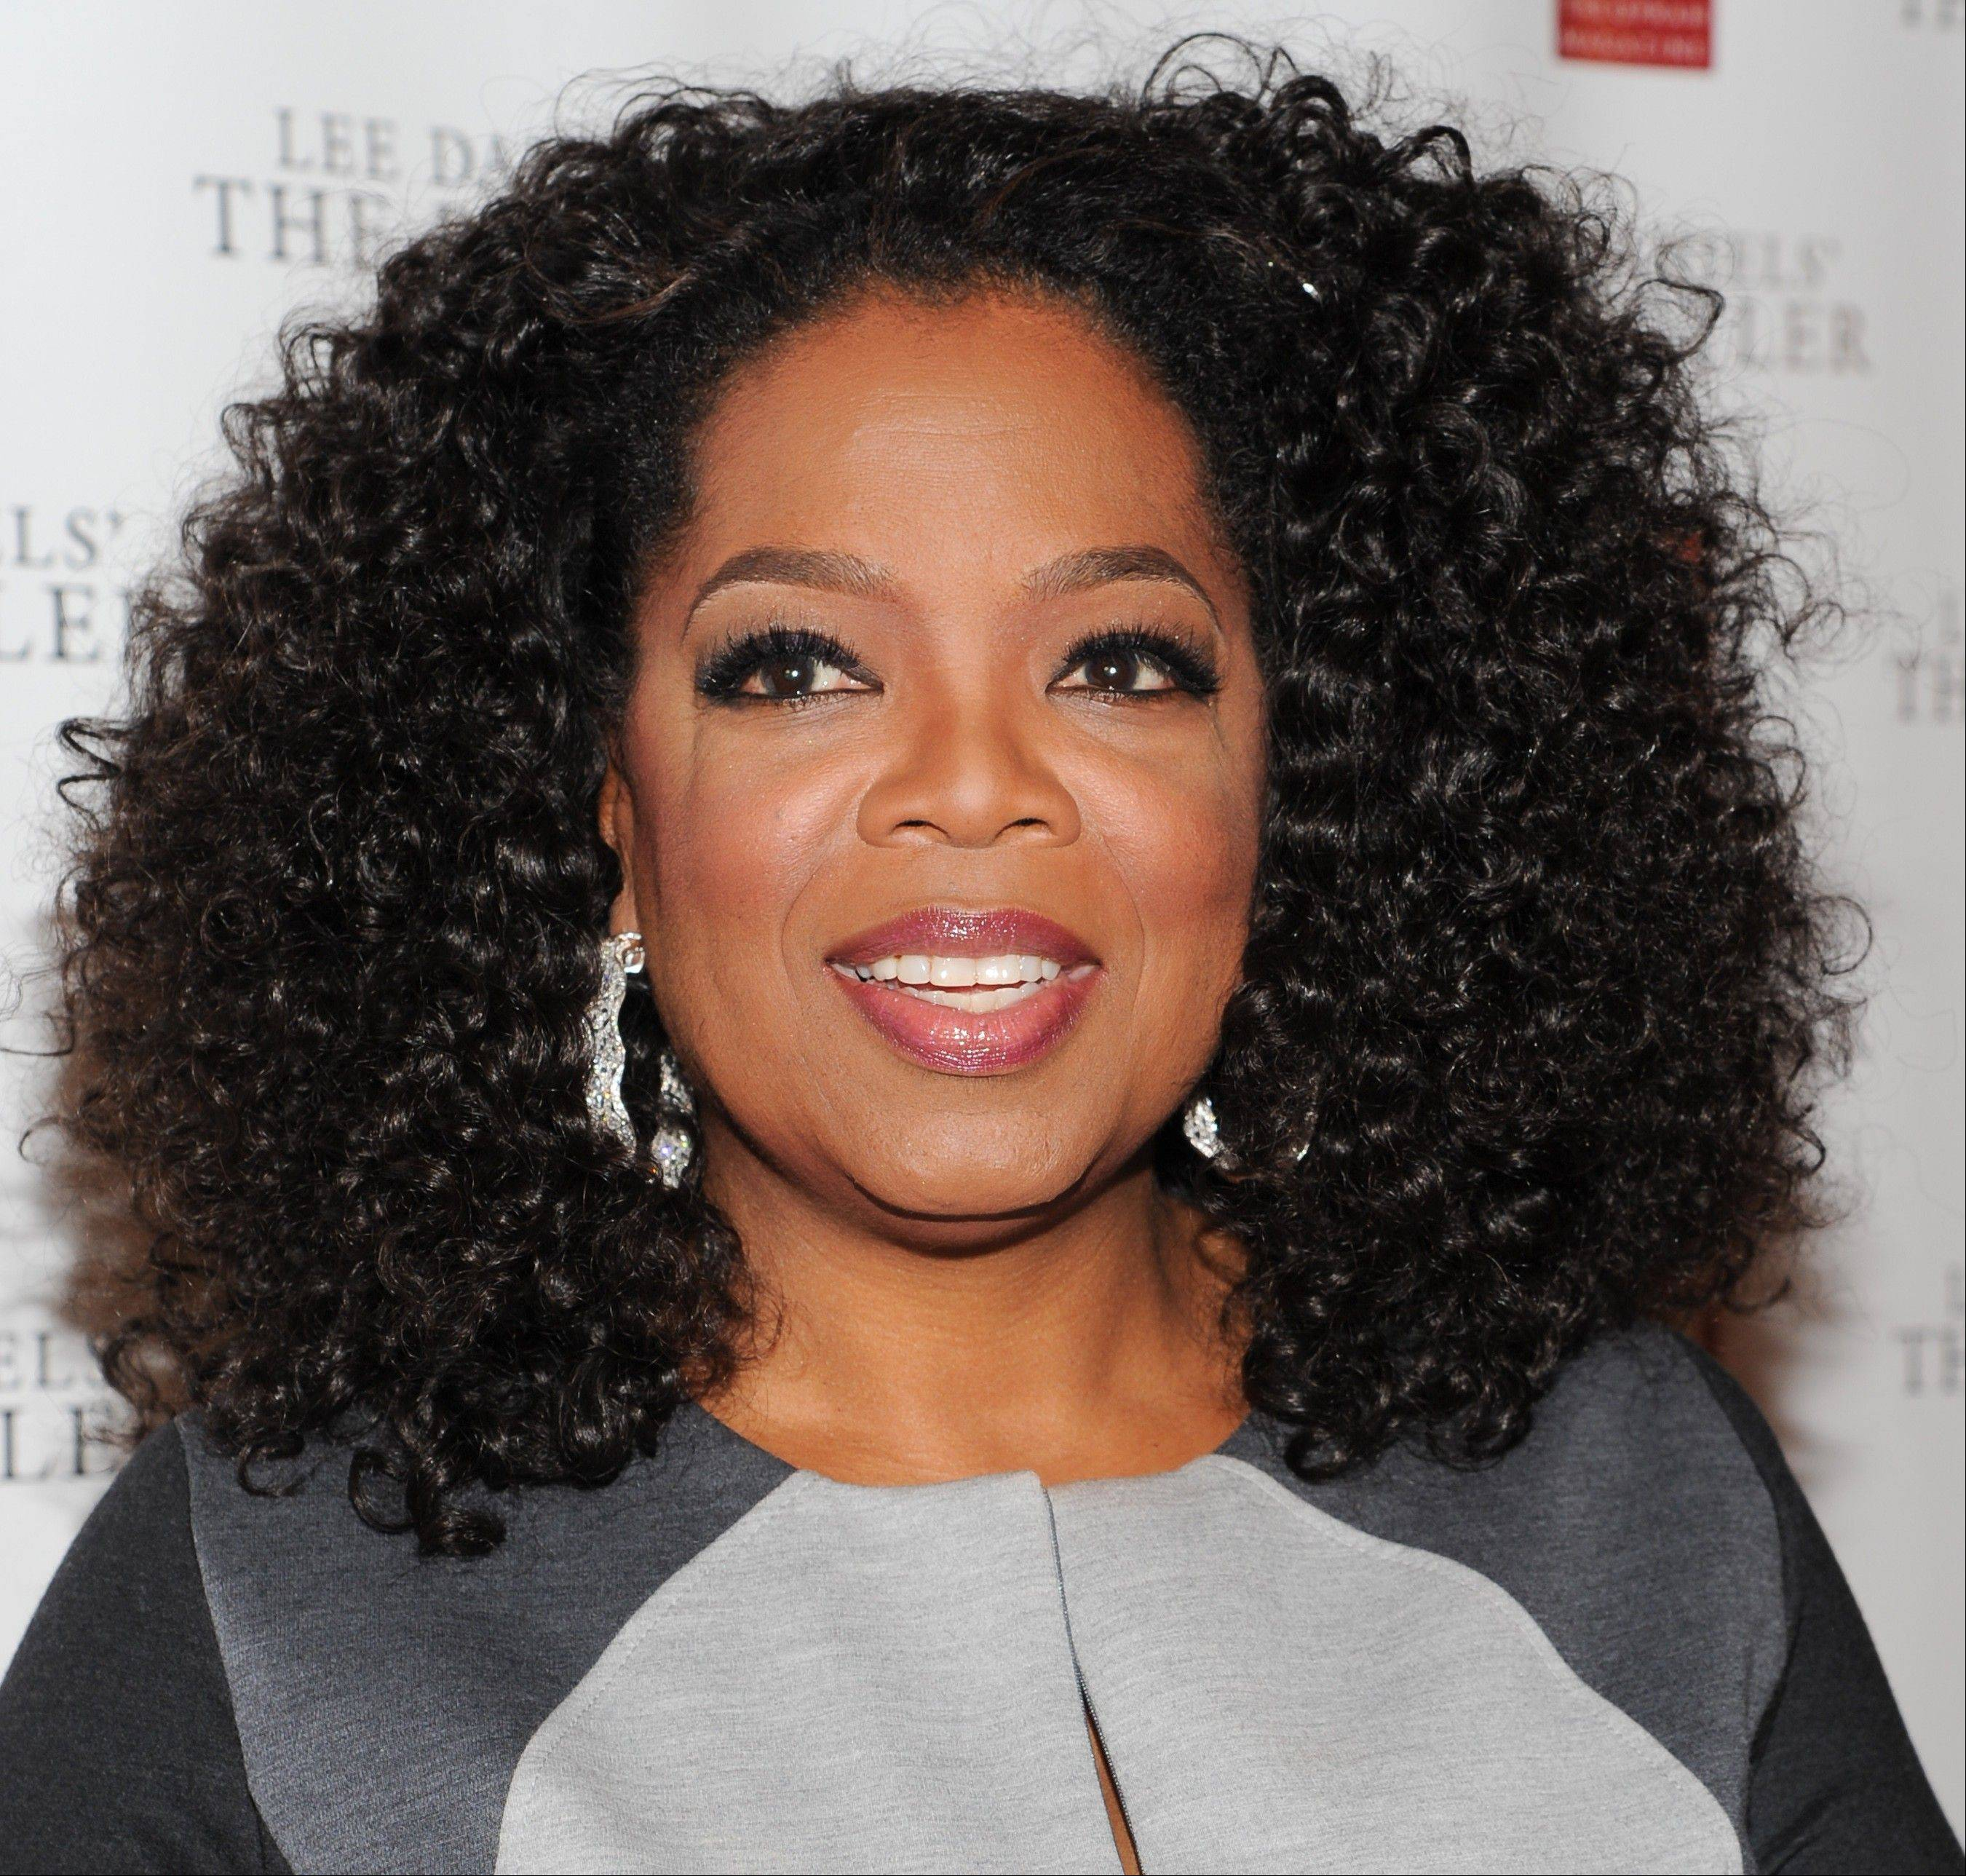 Media mogul and actress Oprah Winfrey's OWN channel is in the black for the first time since its rocky start.